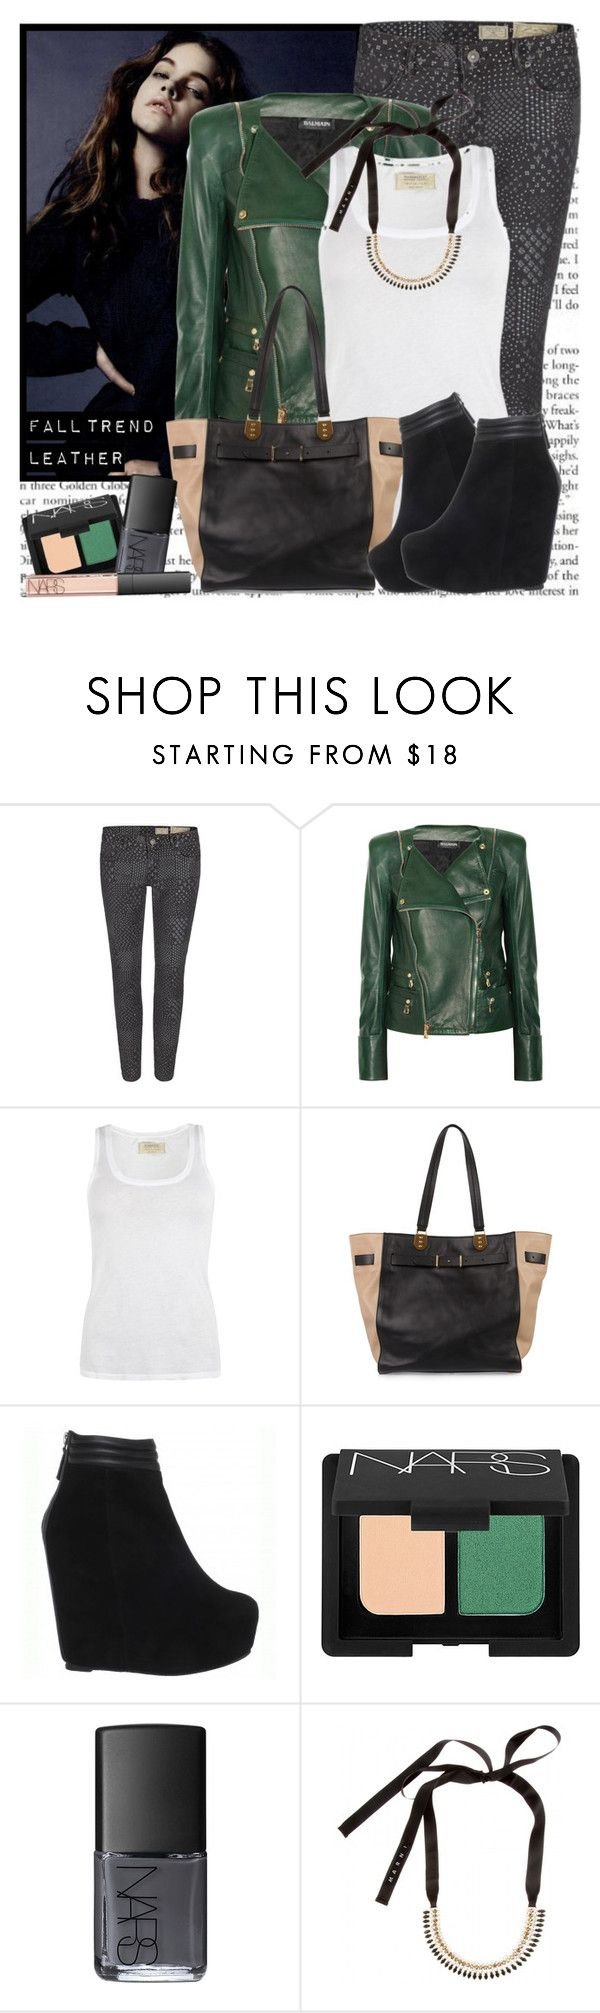 """""""Fall Trend: Leather"""" by christinavakidou ❤ liked on Polyvore featuring AllSaints, Balmain, Christian Louboutin, Madison Harding, NARS Cosmetics, Marni, leather jackets, printed jeans, hidden platforms and fall trend"""